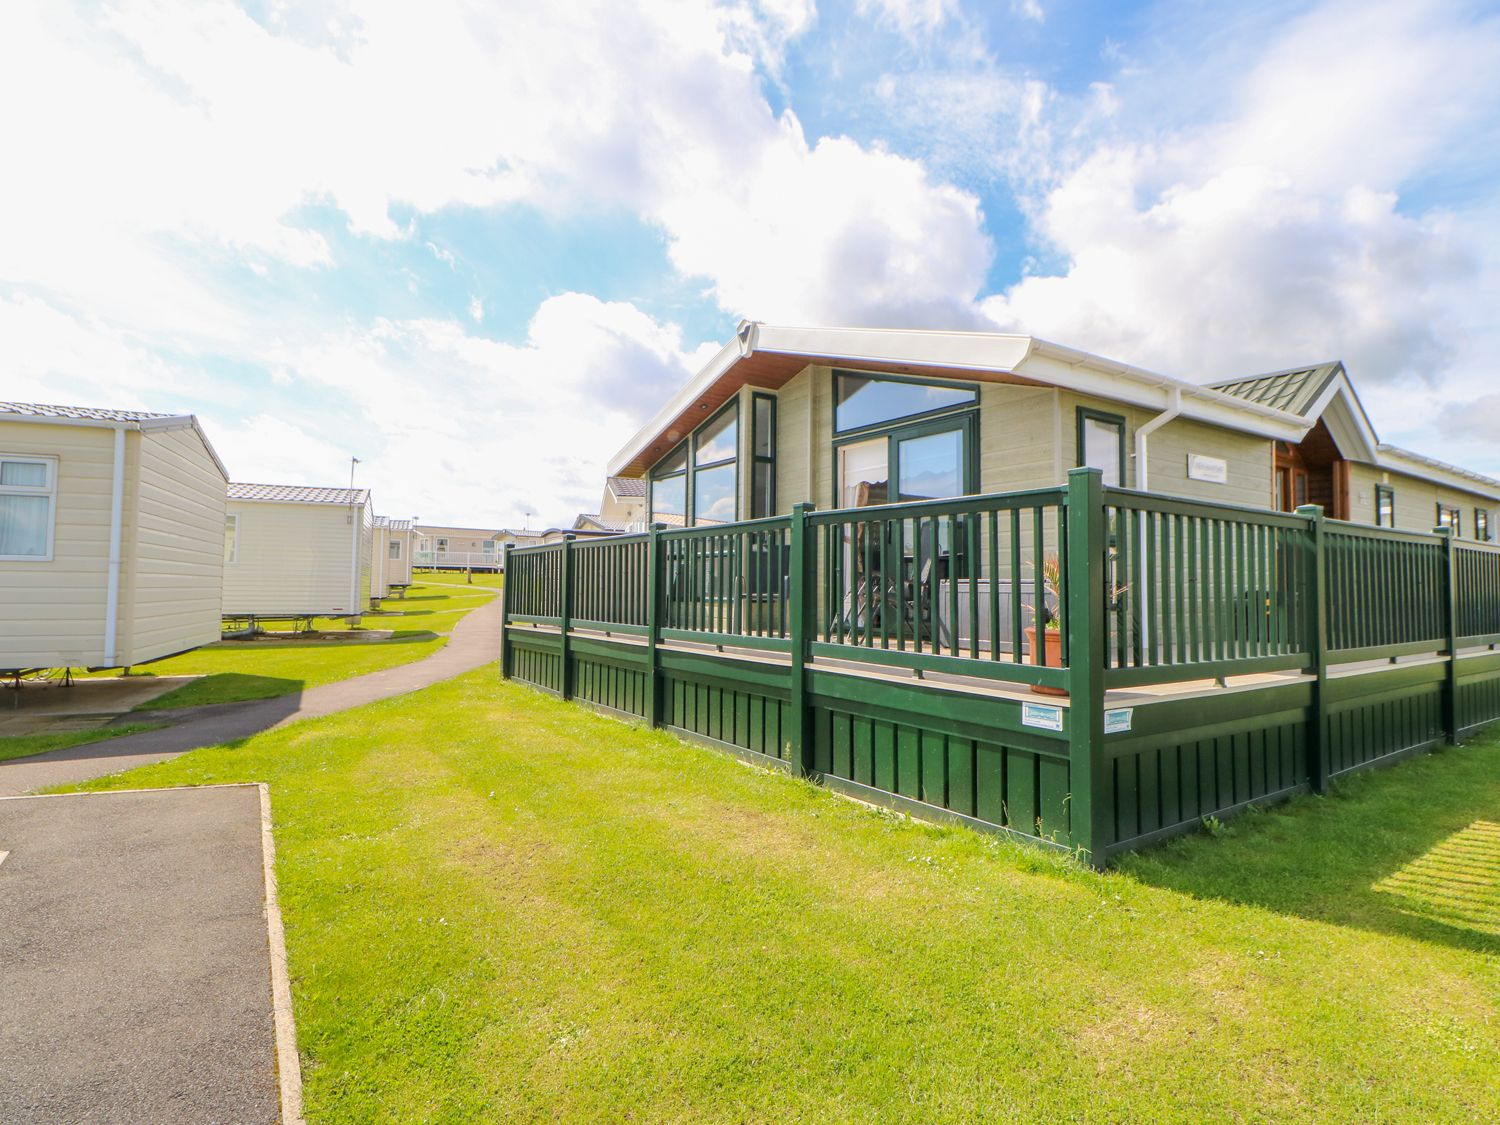 37 Horizon Park - Whitby & North Yorkshire - 1009591 - photo 1